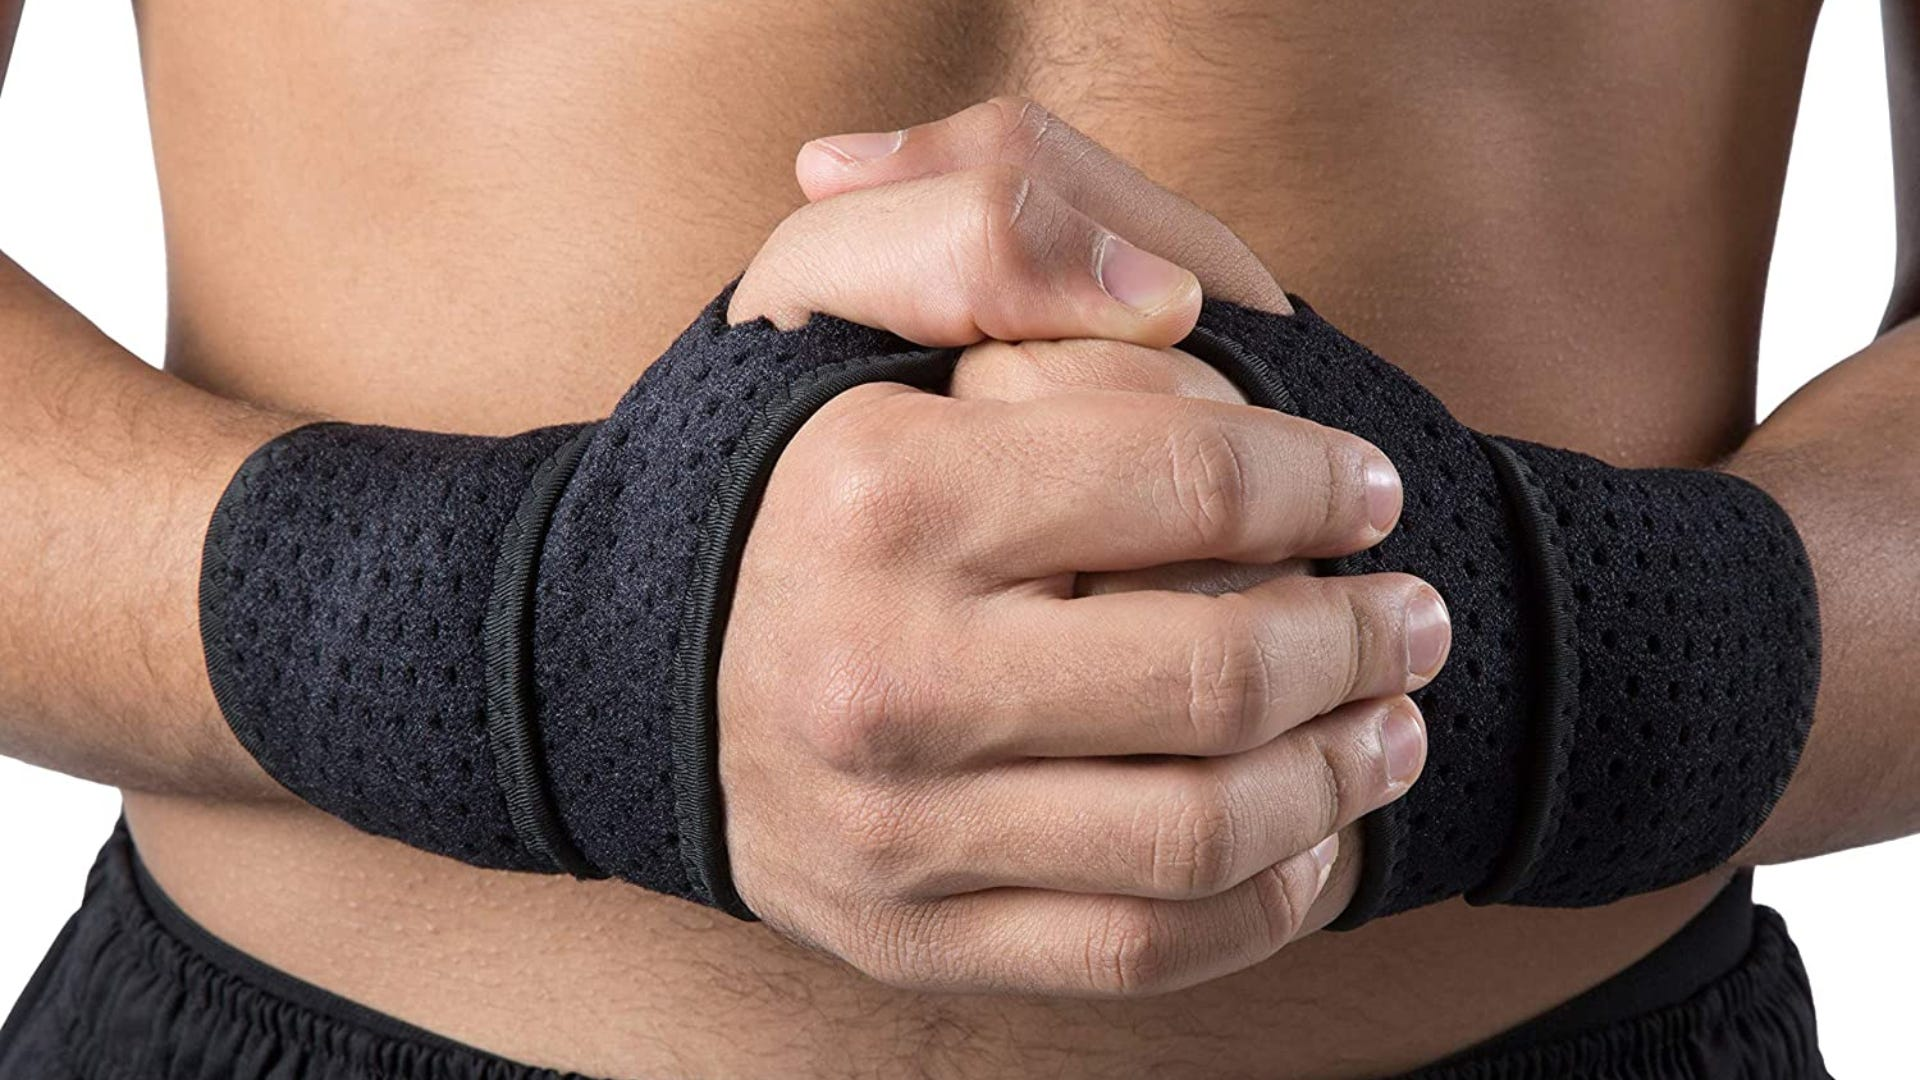 A close up of a man's hands clasped together in front of his torso while wearing a black wrist brace on both hands.